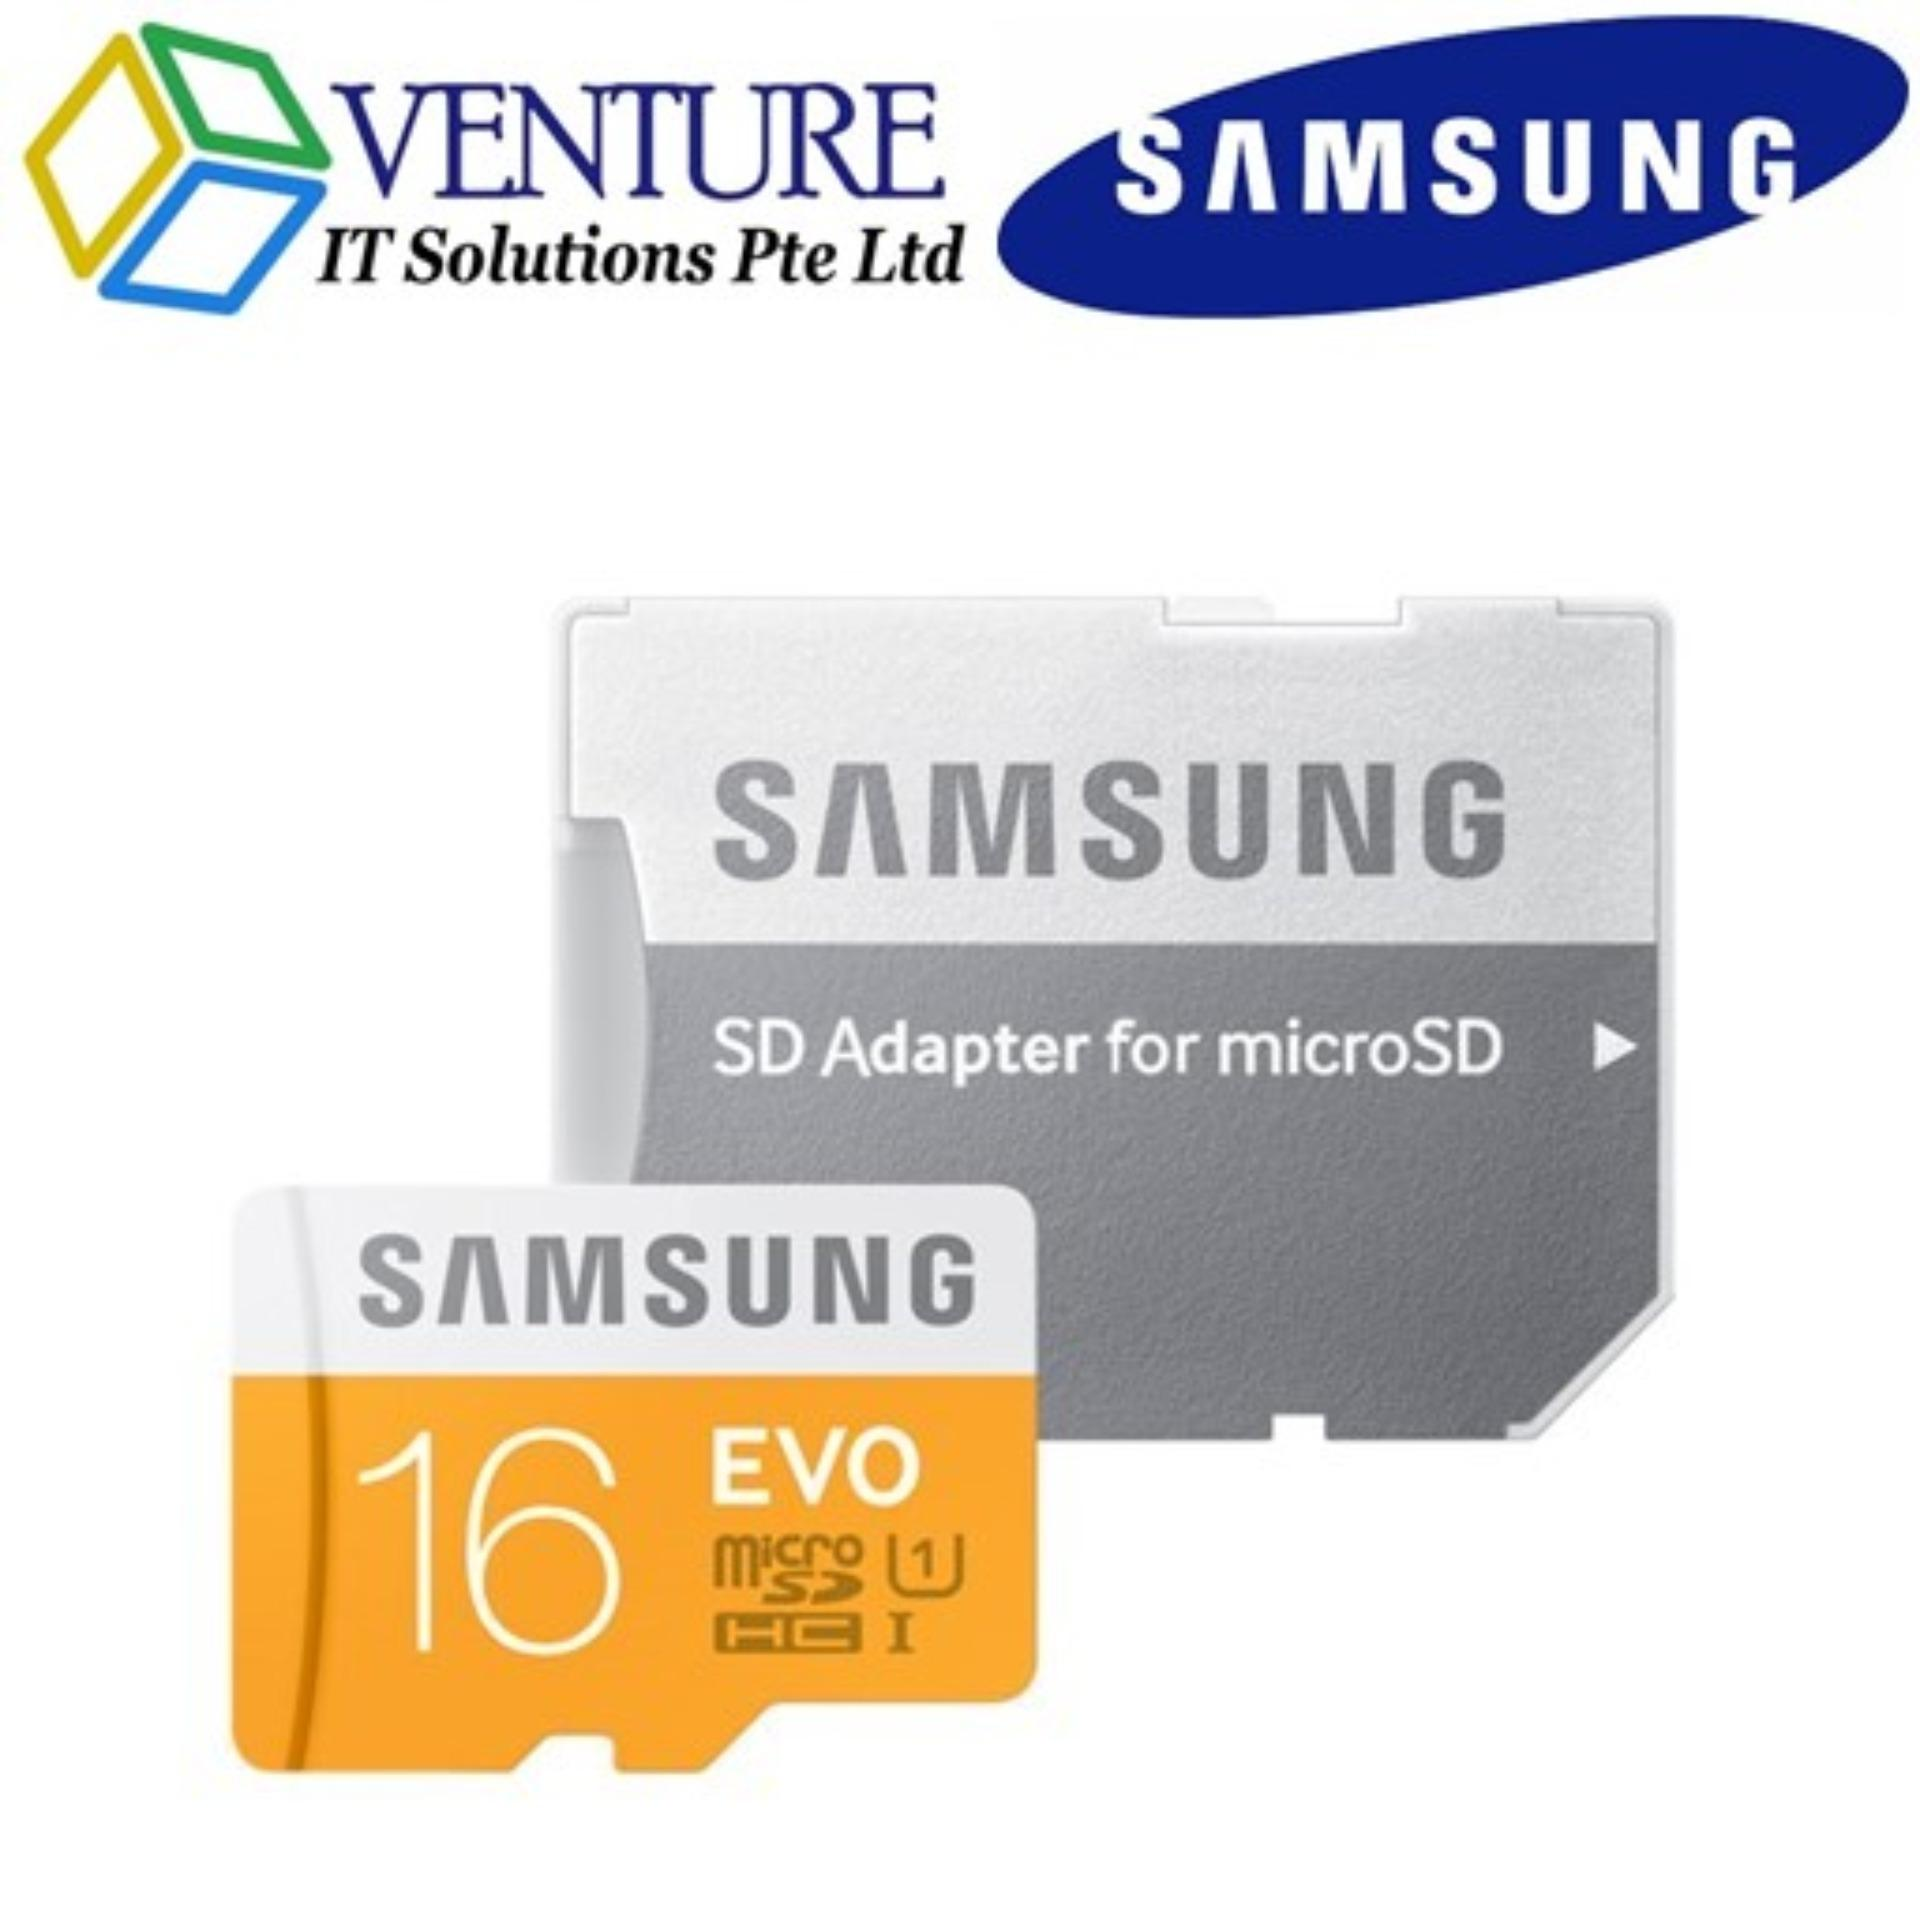 Price Brand New Samsung 16Gb Evo Microsdhc Uhs I Card With Sd Adapter Samsung Online